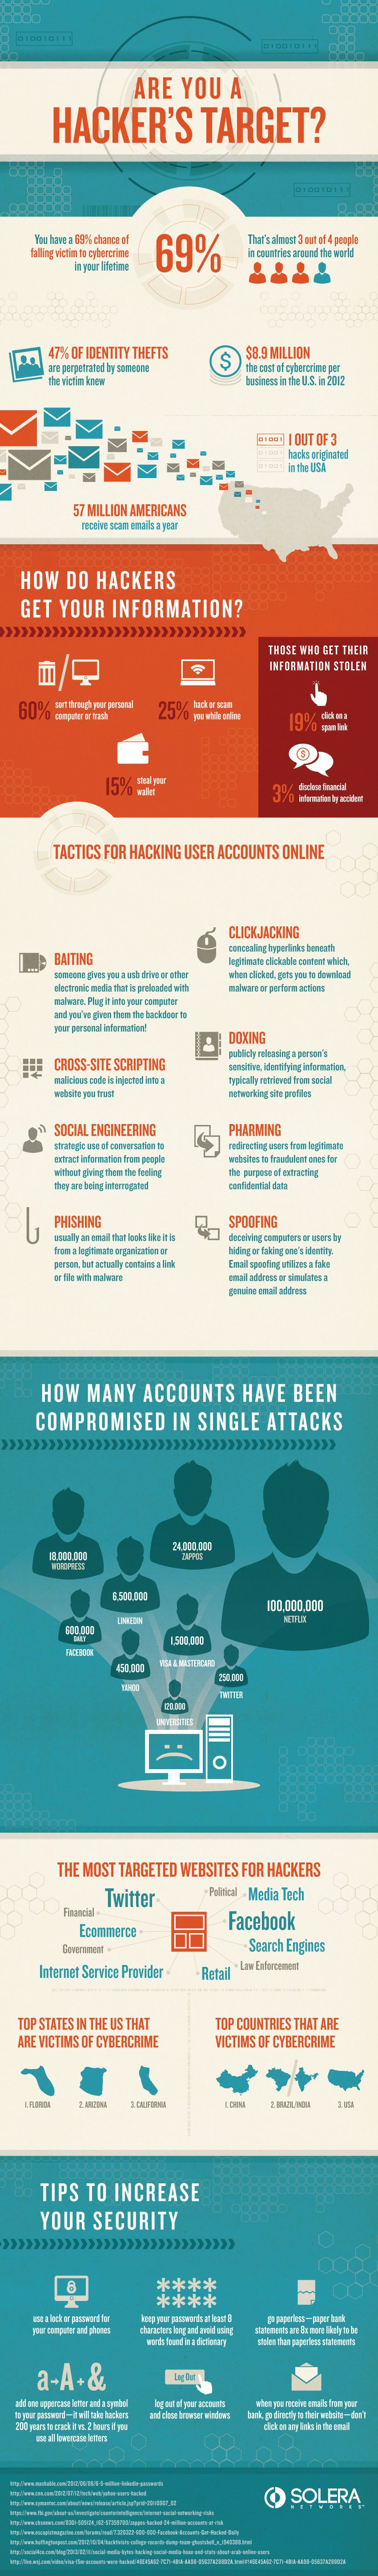 Are You An Easy Hacker Target? [Infographic] | Nerd